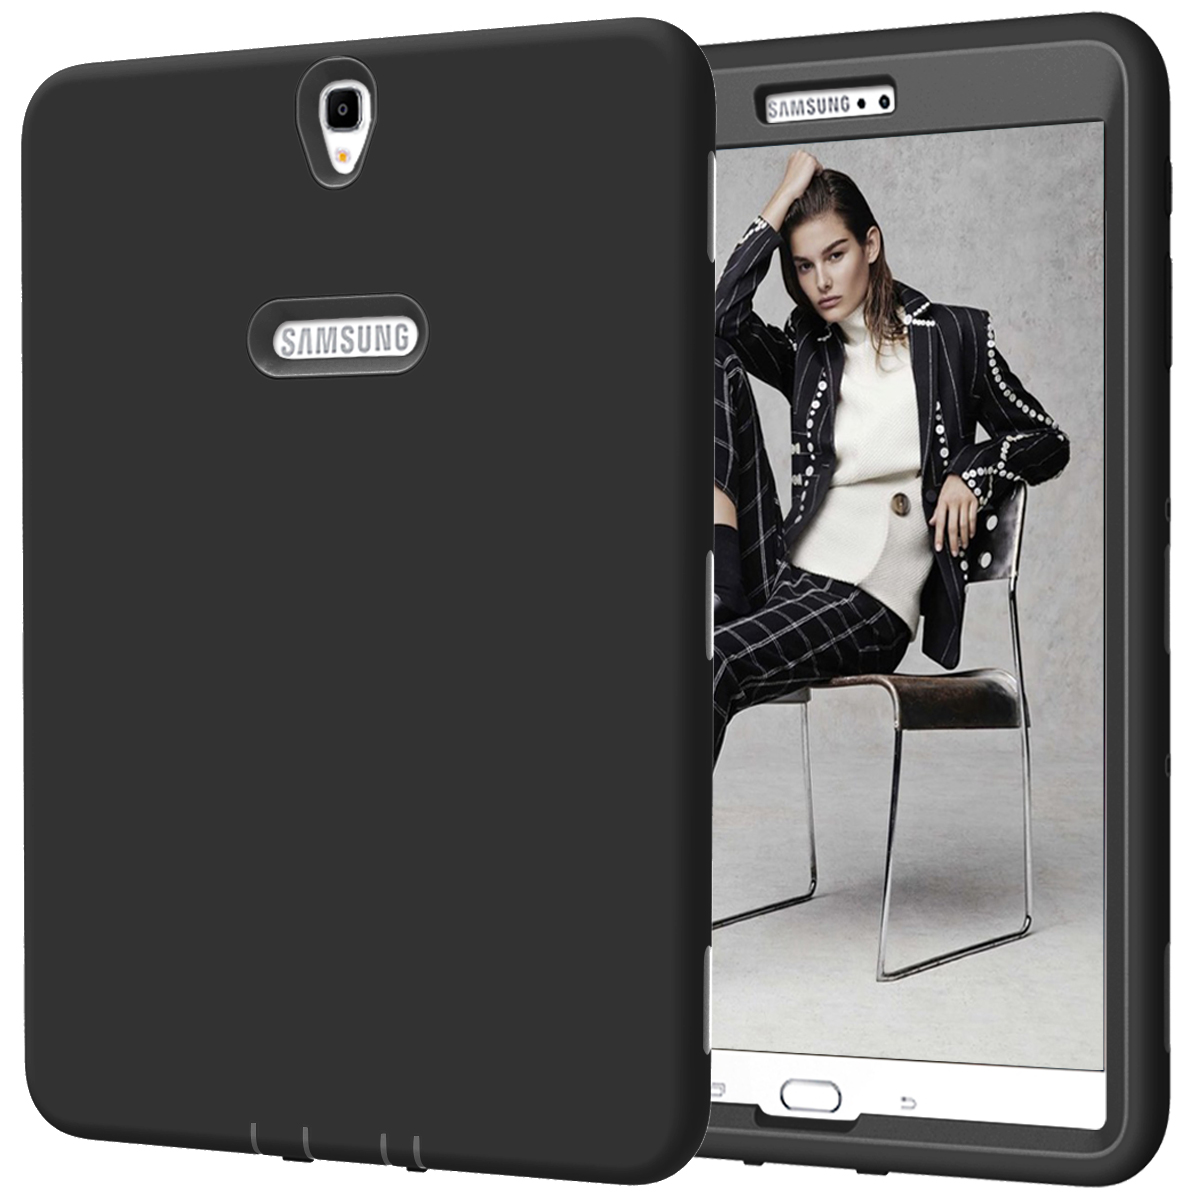 For Samsung Galaxy TAB S3 9.7 SM-T820/T825 Case Cover, High-Impact Shock Absorbent Dual Layer Silicone+Hard PC Bumper Protective аксессуар чехол samsung galaxy tab a 7 sm t285 sm t280 it baggage мультистенд black itssgta74 1